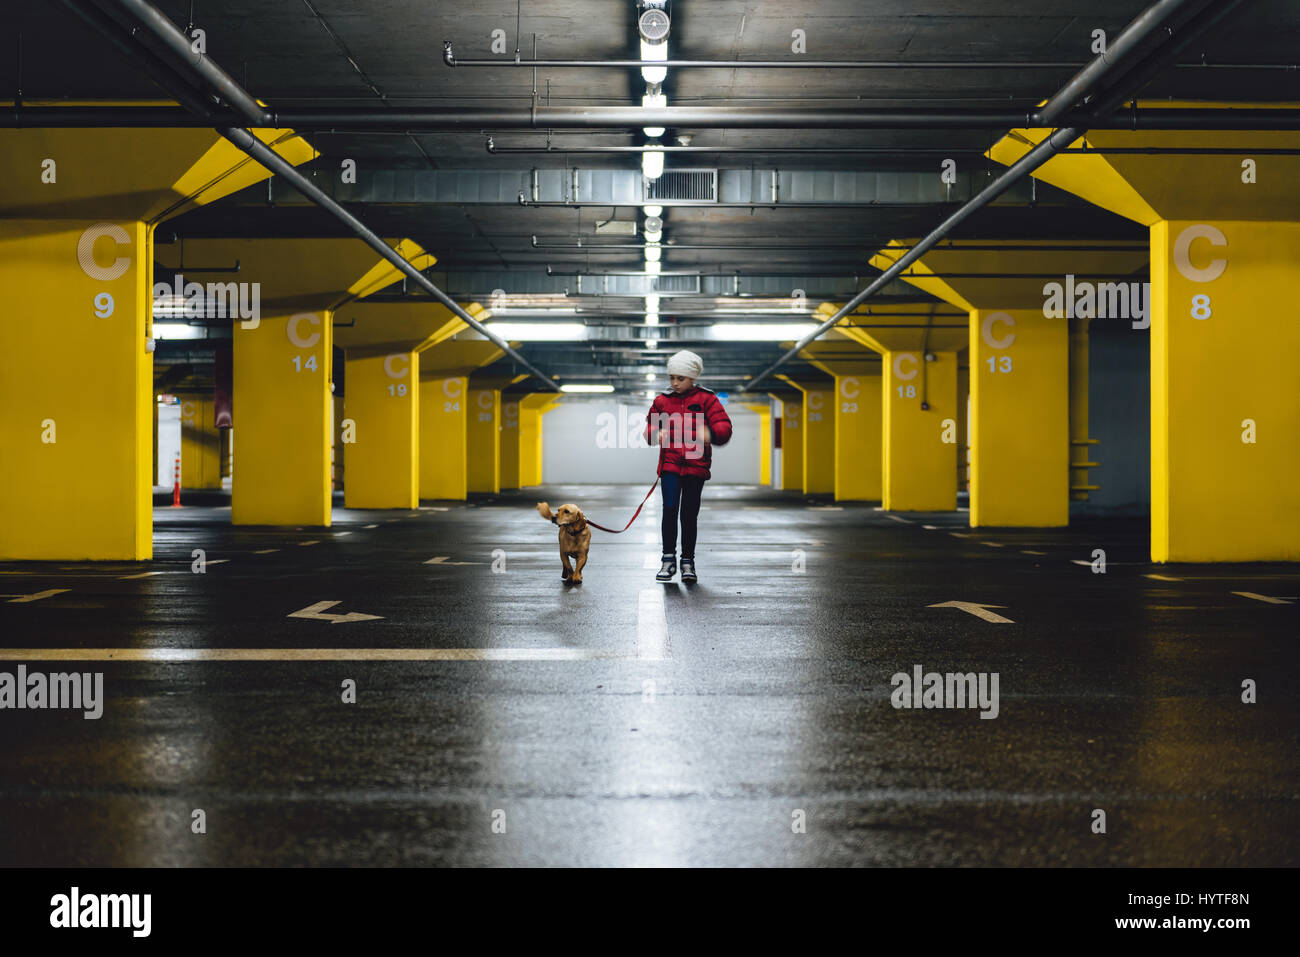 Girl wearing white hat and red jacket walking in the public garage with small yellow dog - Stock Image